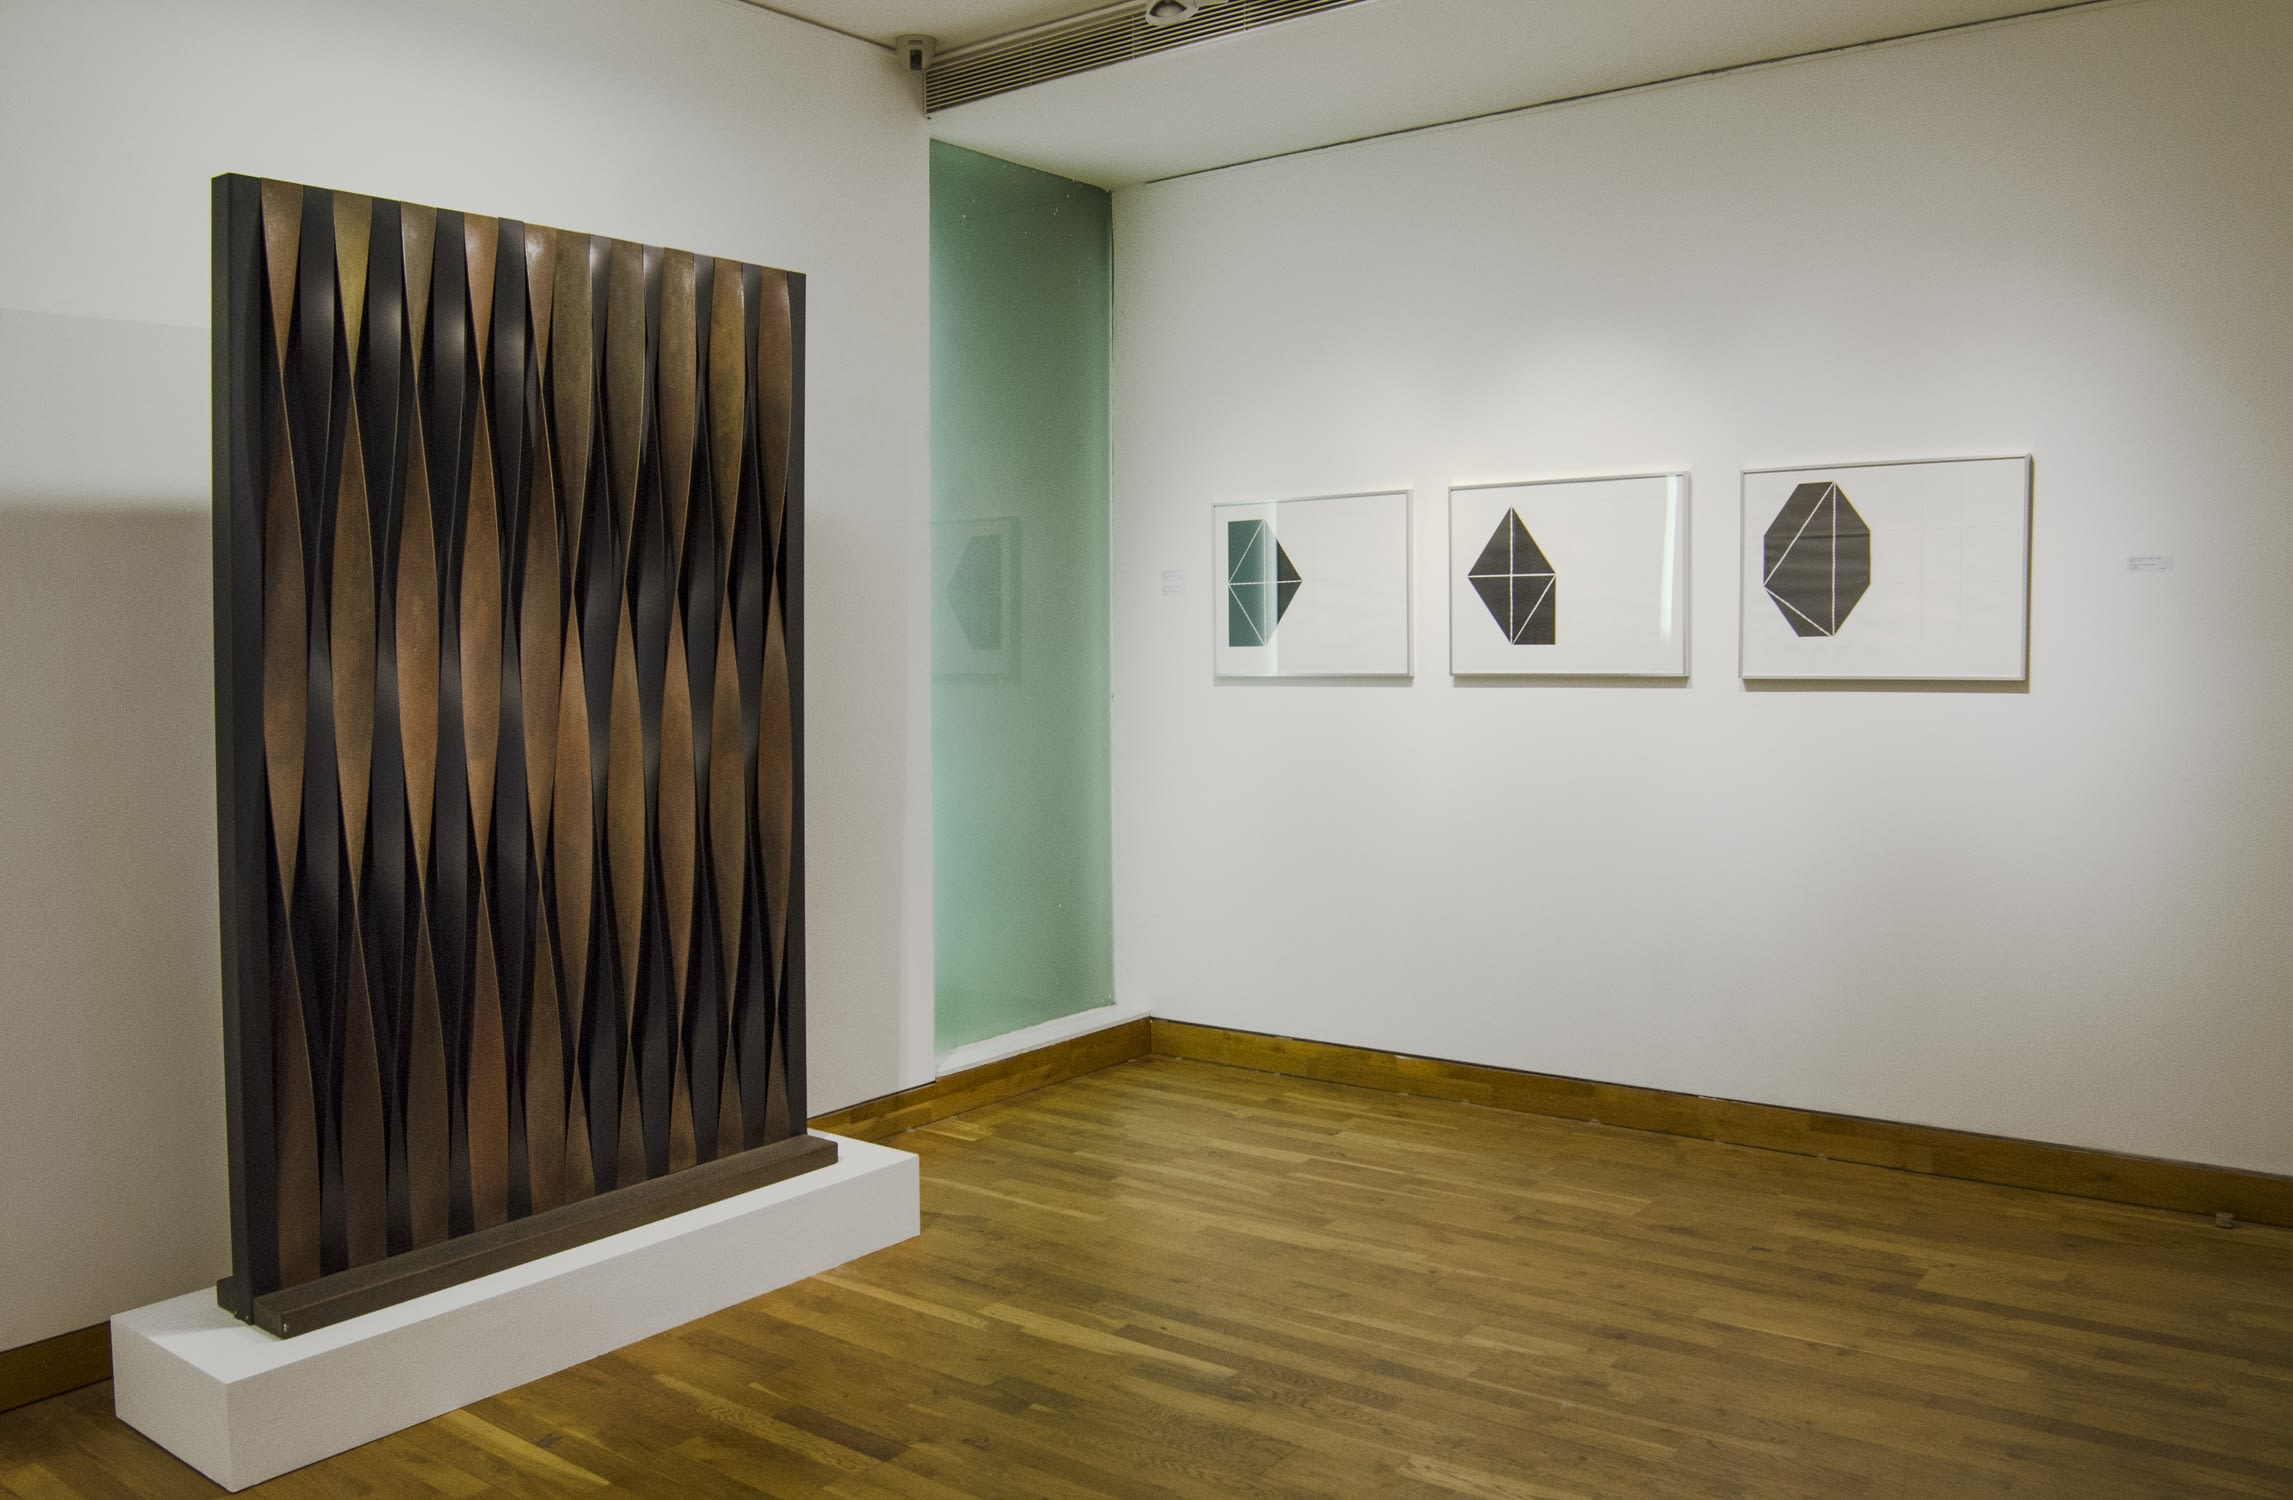 "<span class=""link fancybox-details-link""><a href=""/exhibitions/64/works/image_standalone127/"">View Detail Page</a></span><p>WALTER LEBLANC 